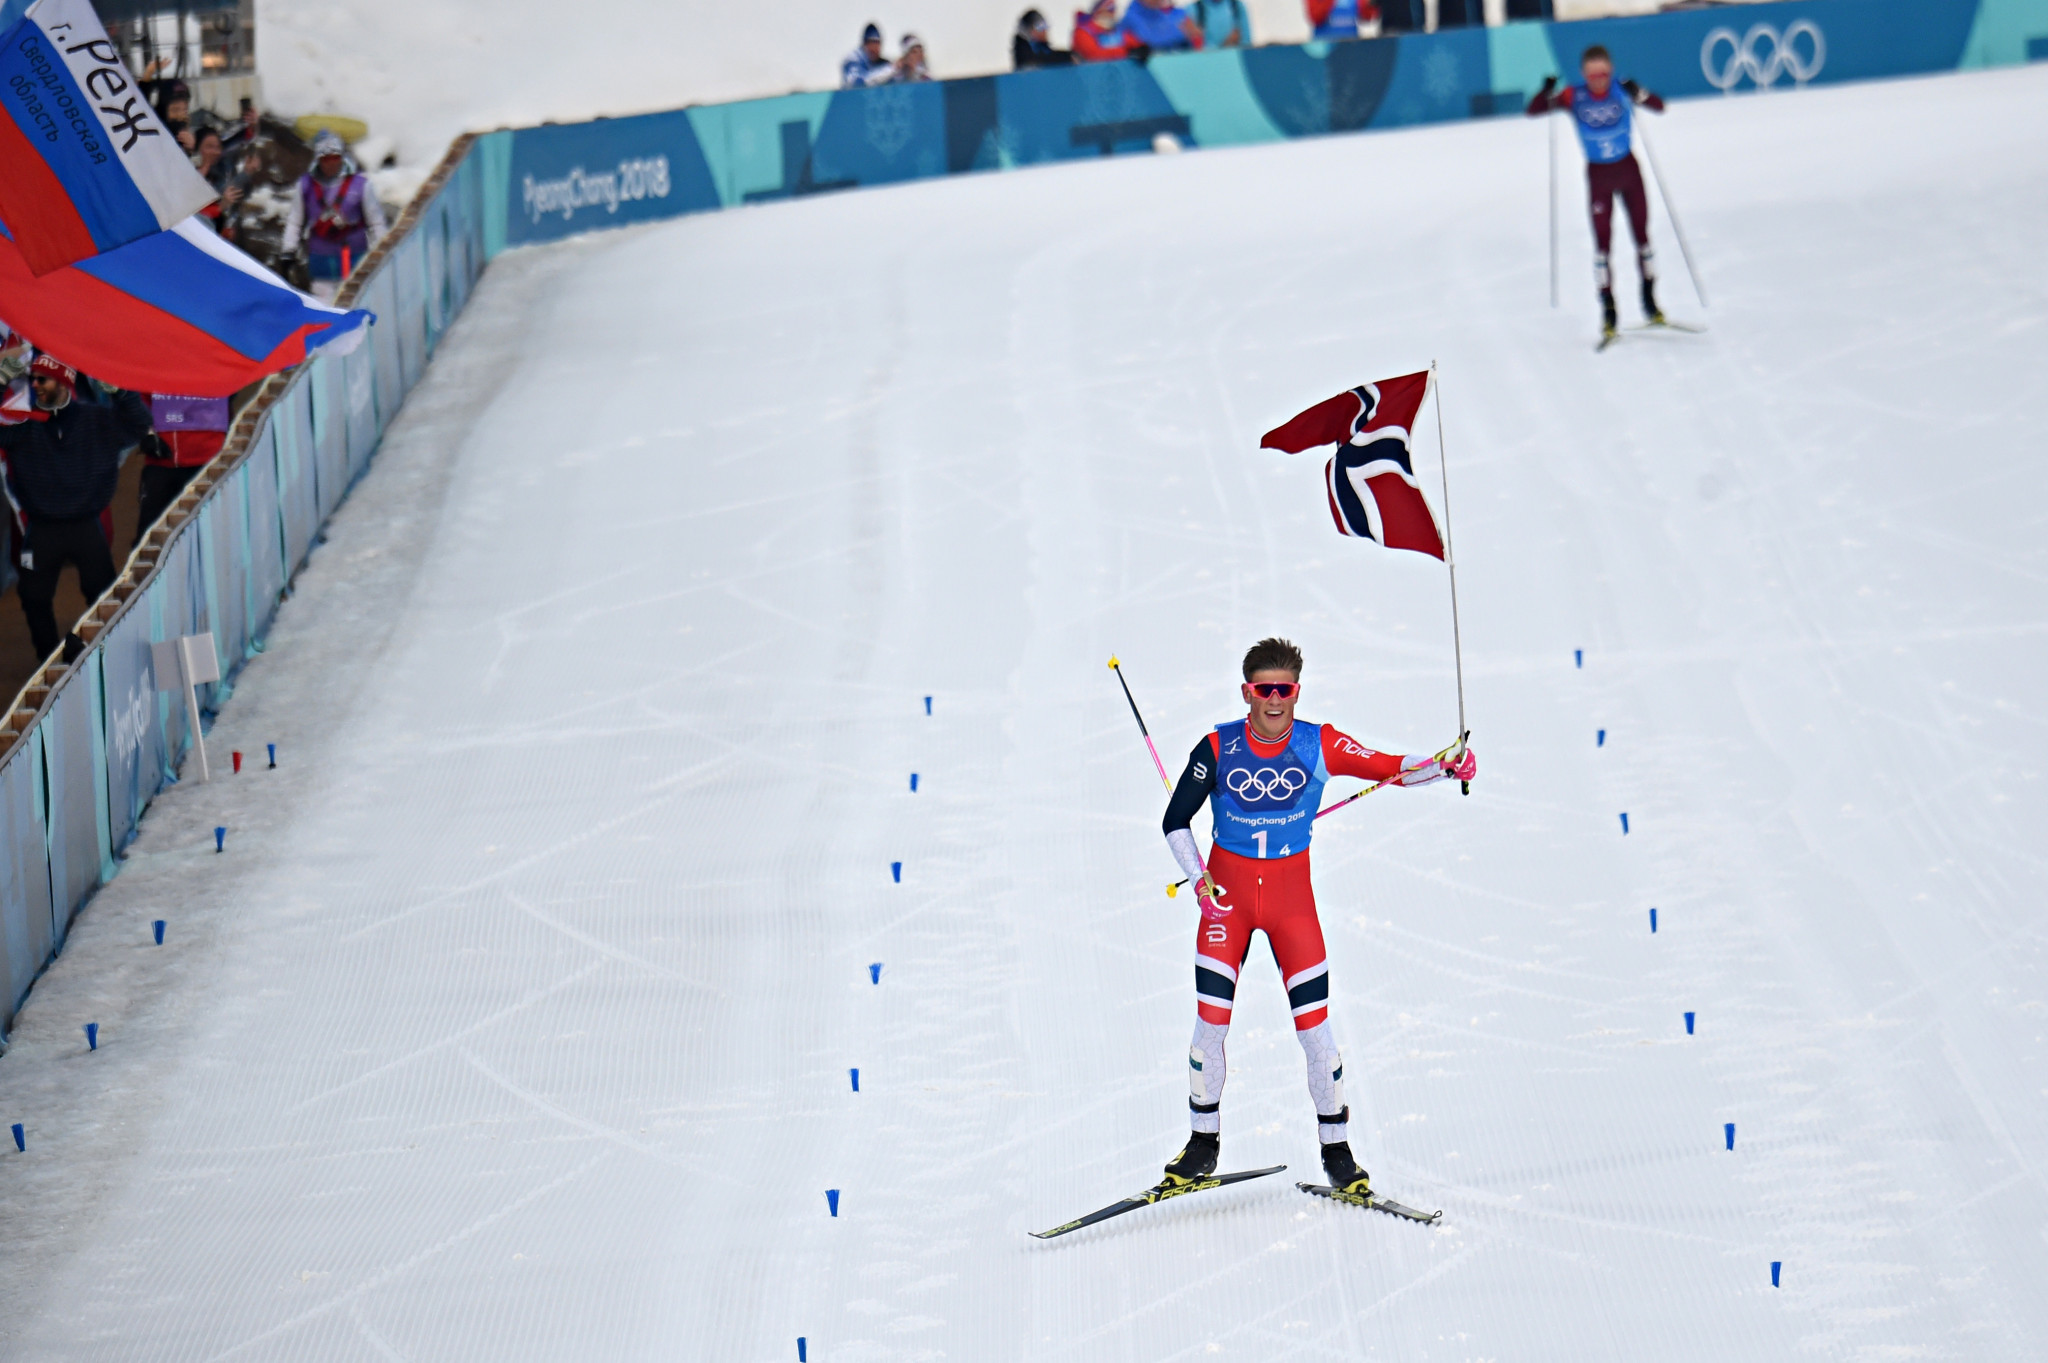 Johannes Høsflot Klæbo was a triple Winter Olympic champion at Pyeongchang 2018 ©Getty Images